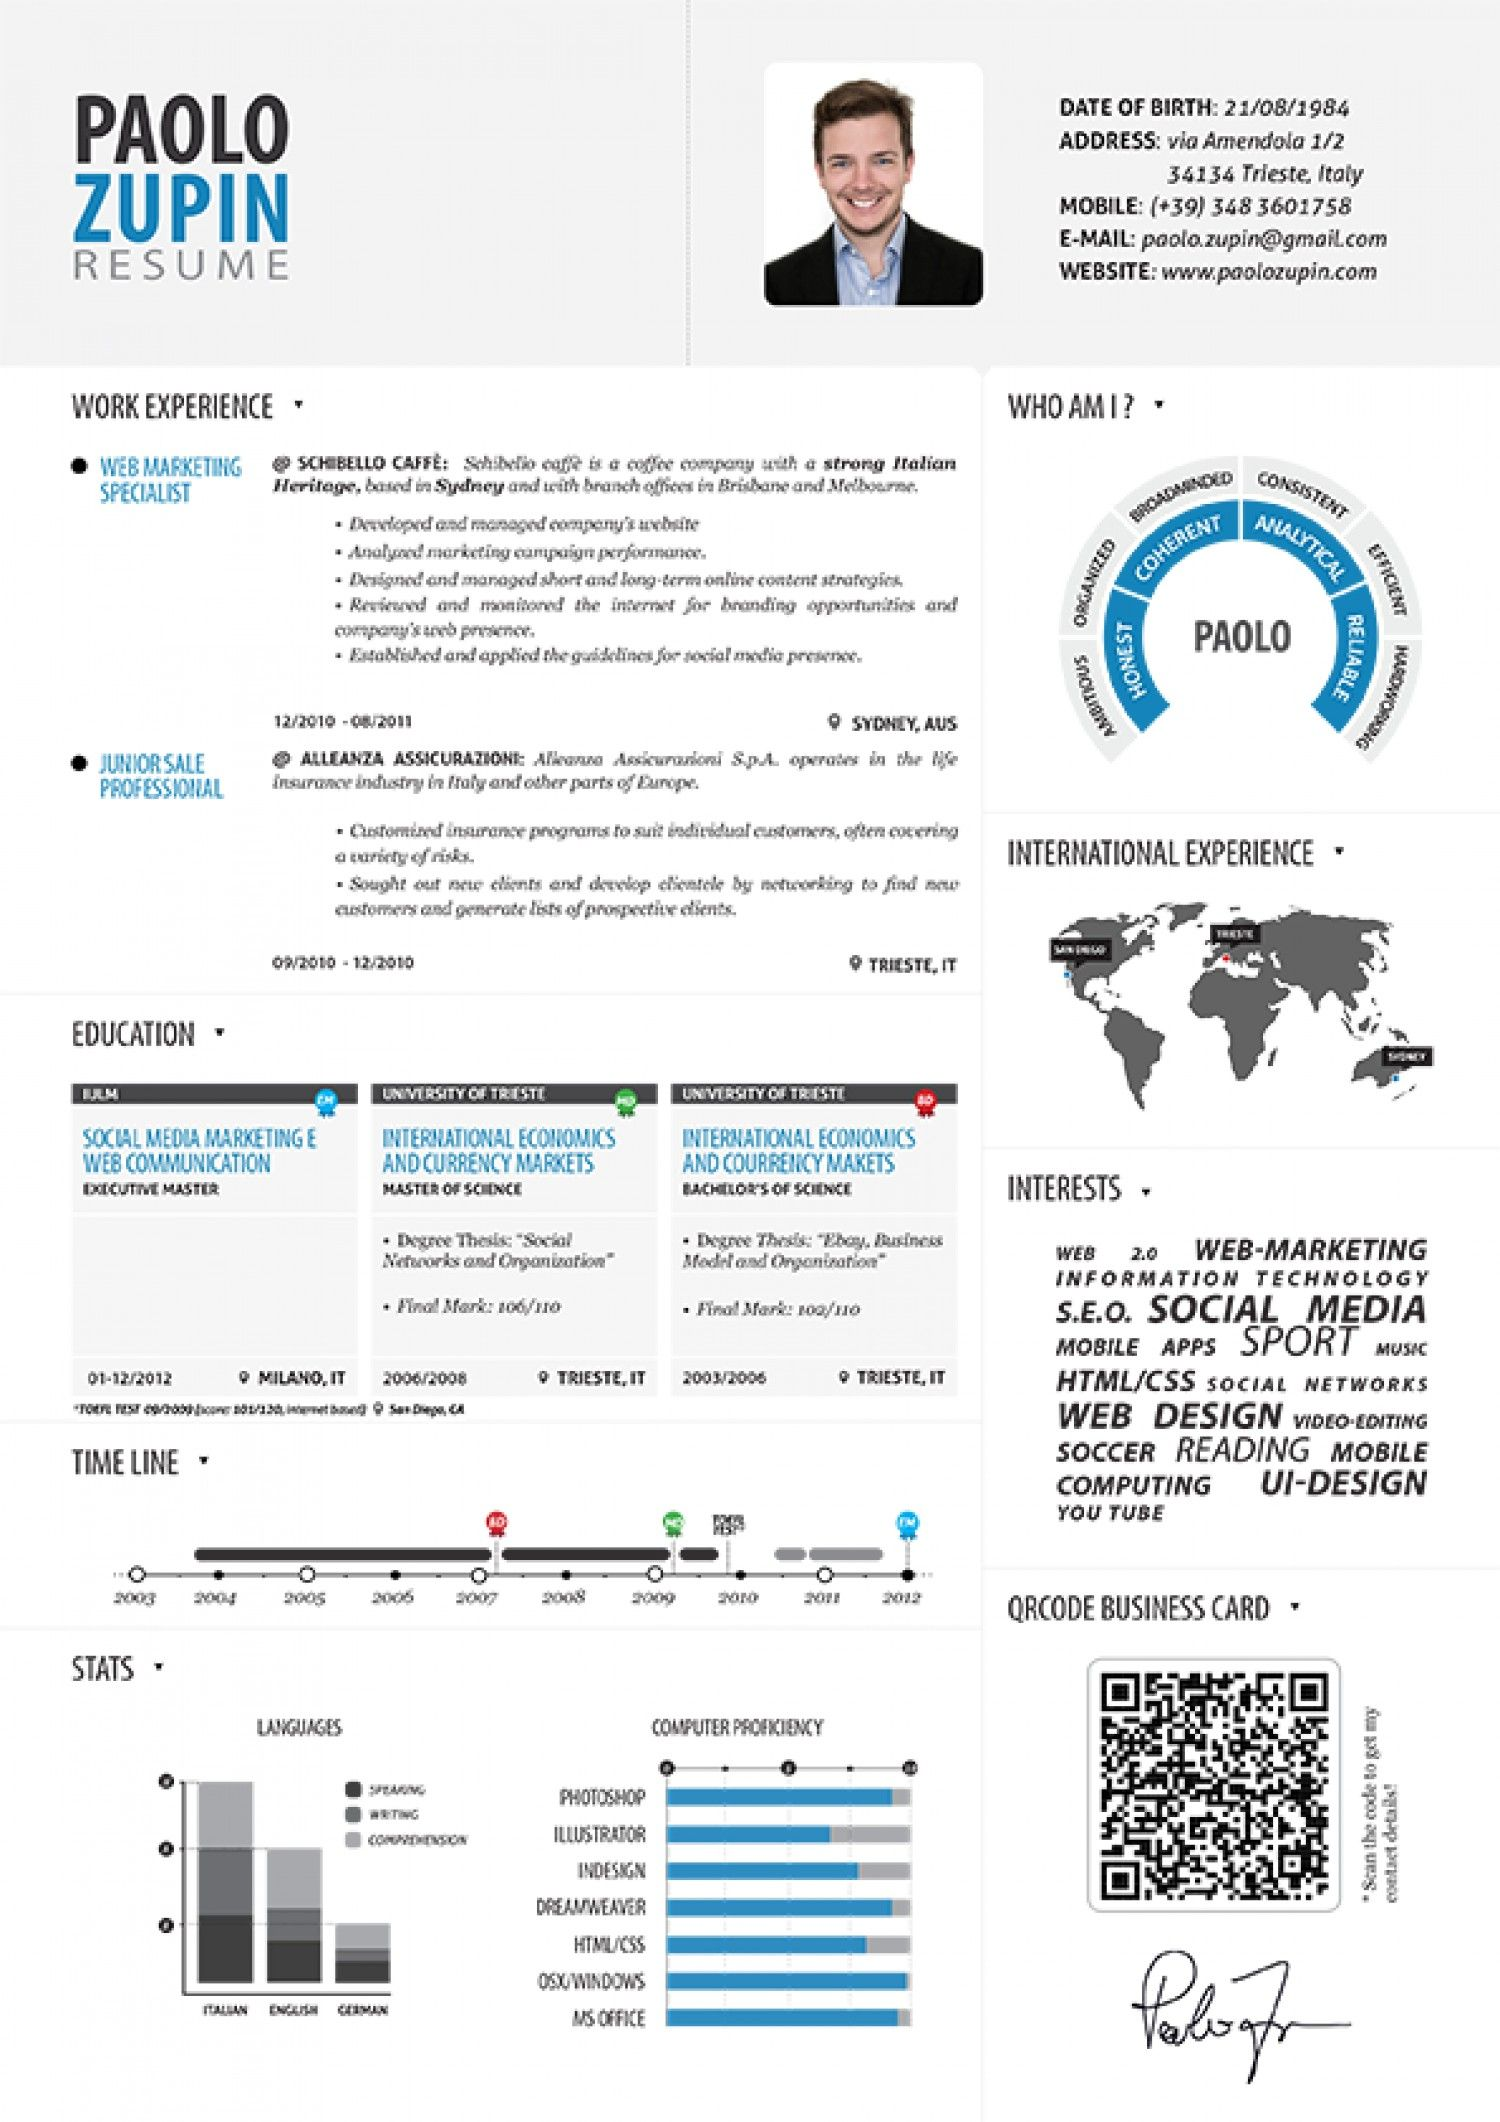 Opposenewapstandardsus  Unique  Images About Resume  Cv Design On Pinterest  Infographic  With Outstanding  Images About Resume  Cv Design On Pinterest  Infographic Resume Resume And Resume Design With Cute Bad Resume Example Also Resume Search For Employers In Addition Human Resources Resume Sample And Ccna Resume As Well As Medical Assistant Resume Example Additionally The Perfect Resume Format From Pinterestcom With Opposenewapstandardsus  Outstanding  Images About Resume  Cv Design On Pinterest  Infographic  With Cute  Images About Resume  Cv Design On Pinterest  Infographic Resume Resume And Resume Design And Unique Bad Resume Example Also Resume Search For Employers In Addition Human Resources Resume Sample From Pinterestcom